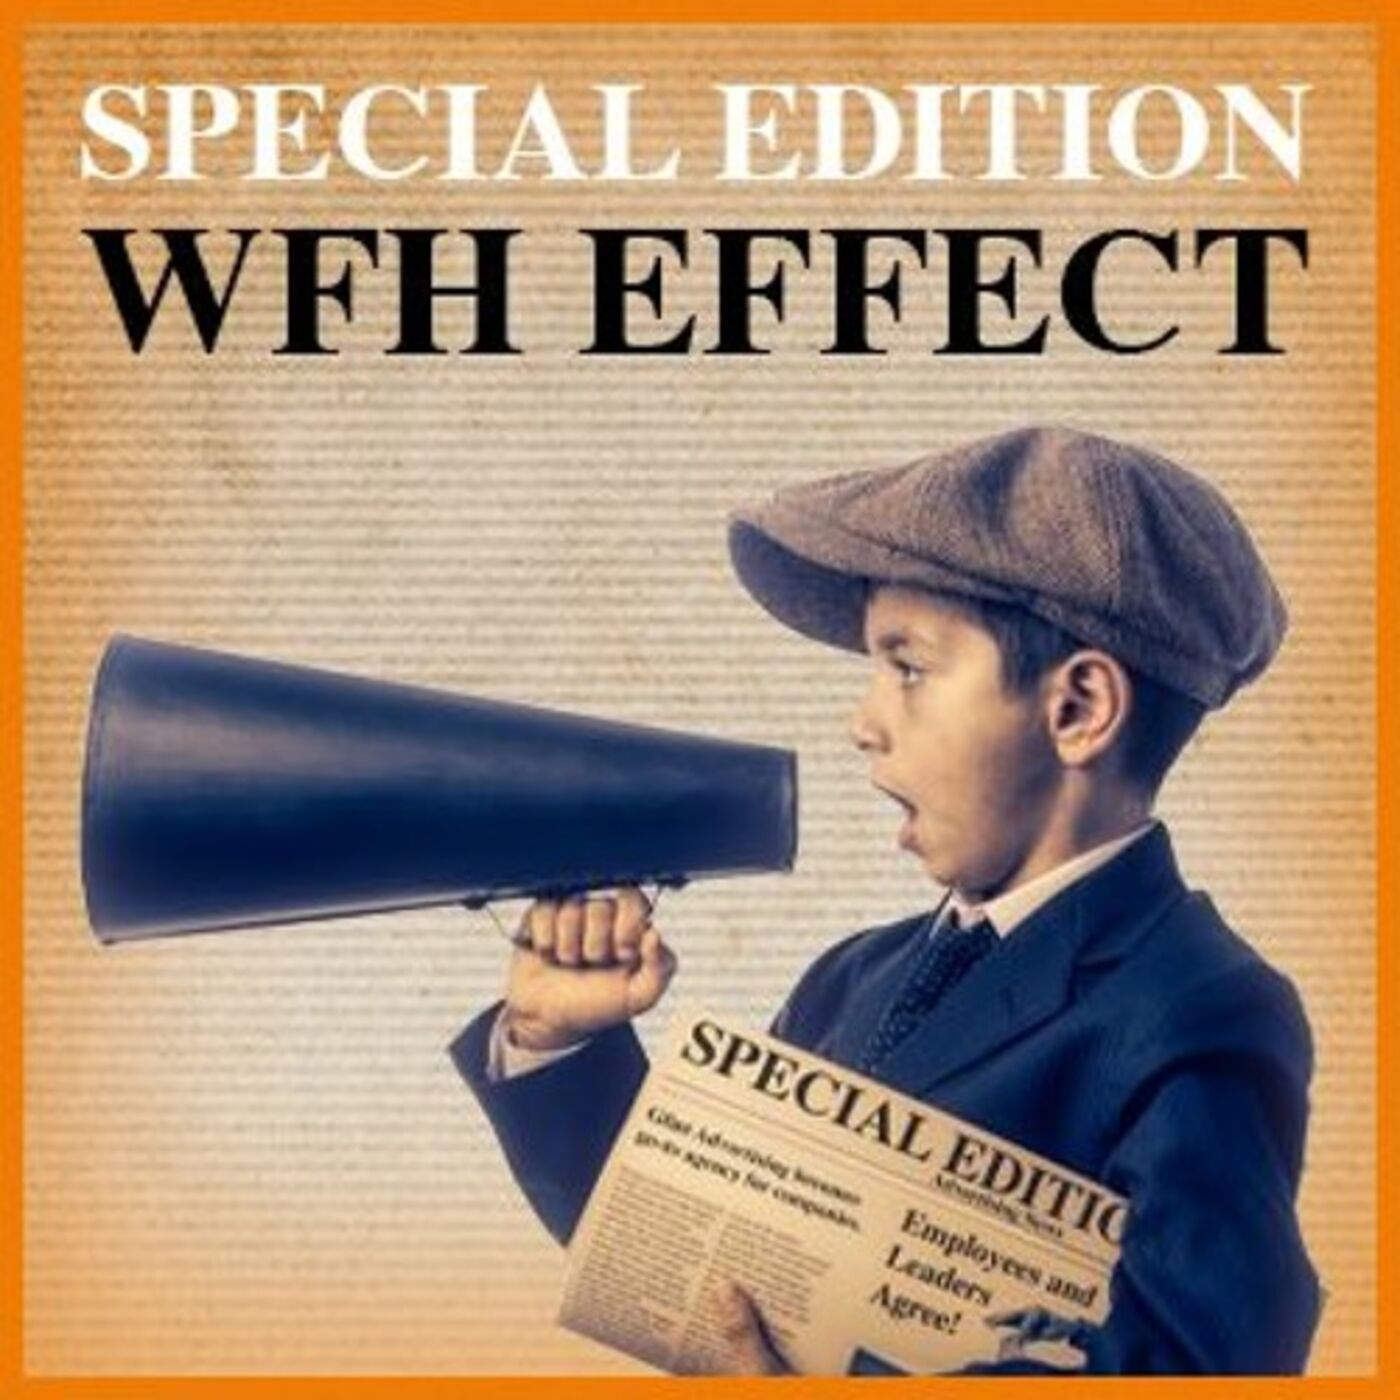 WFH Impact on Business - The Glint Standard